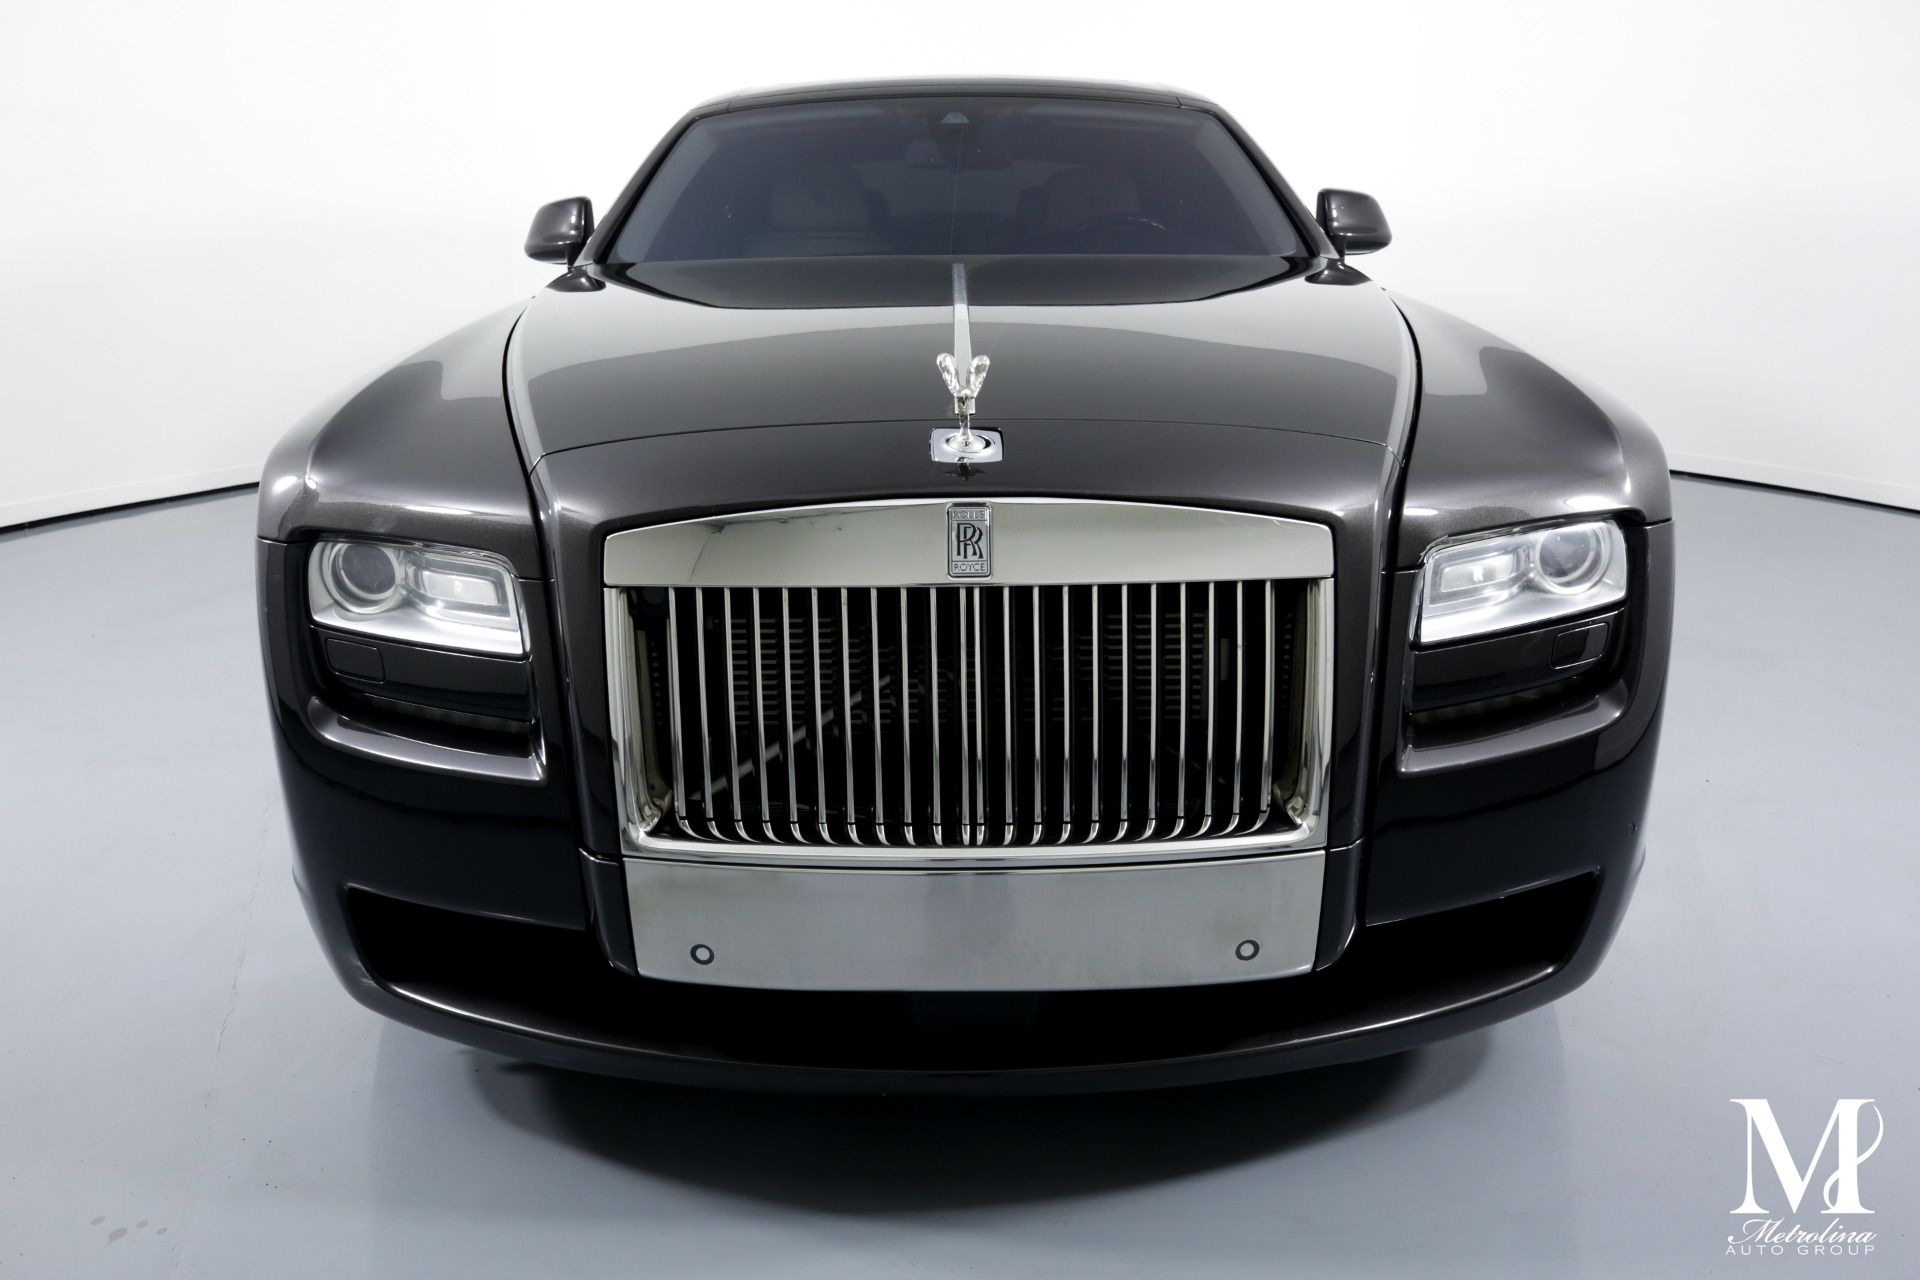 Used 2014 Rolls-Royce Ghost for sale $124,996 at Metrolina Auto Group in Charlotte NC 28217 - 3